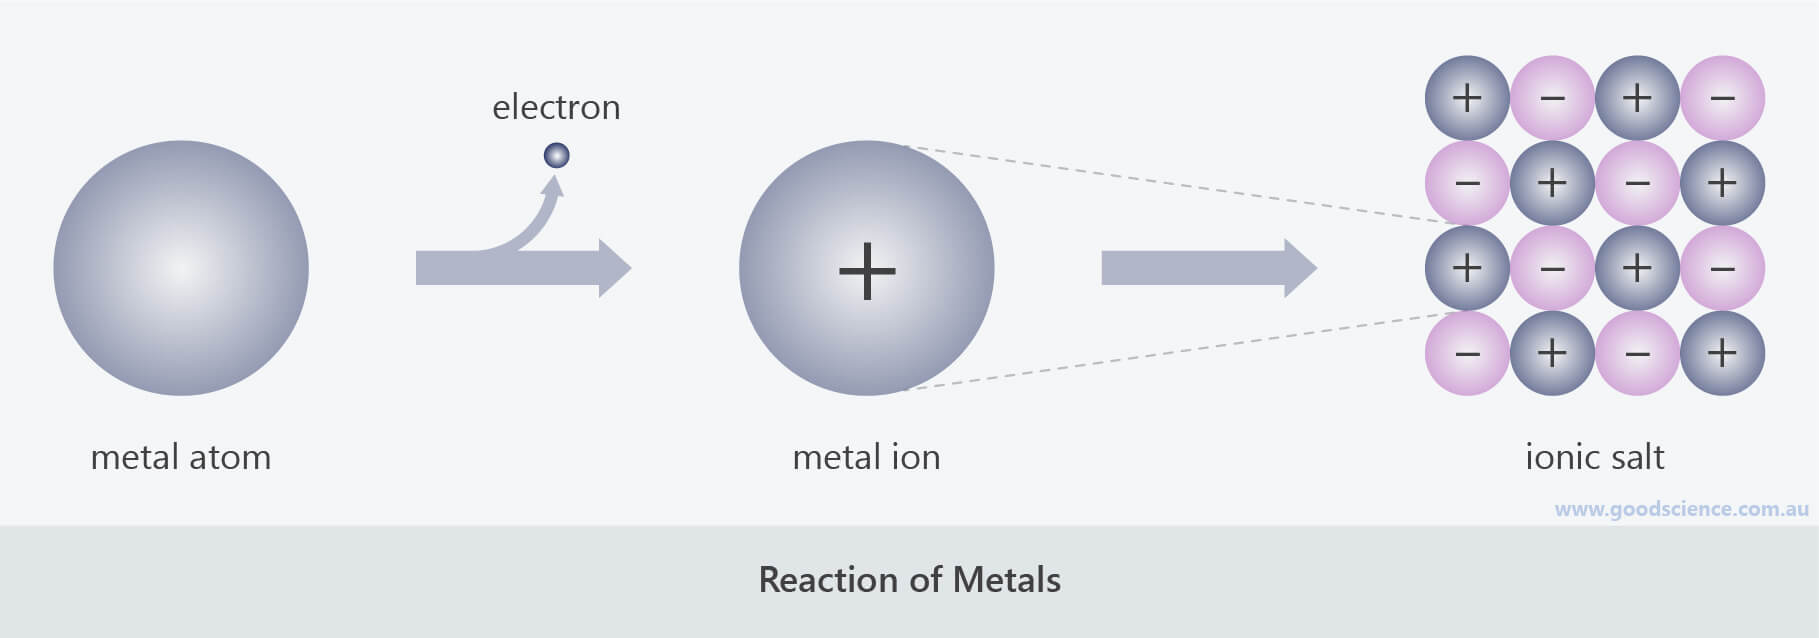 chemical reactions of metals